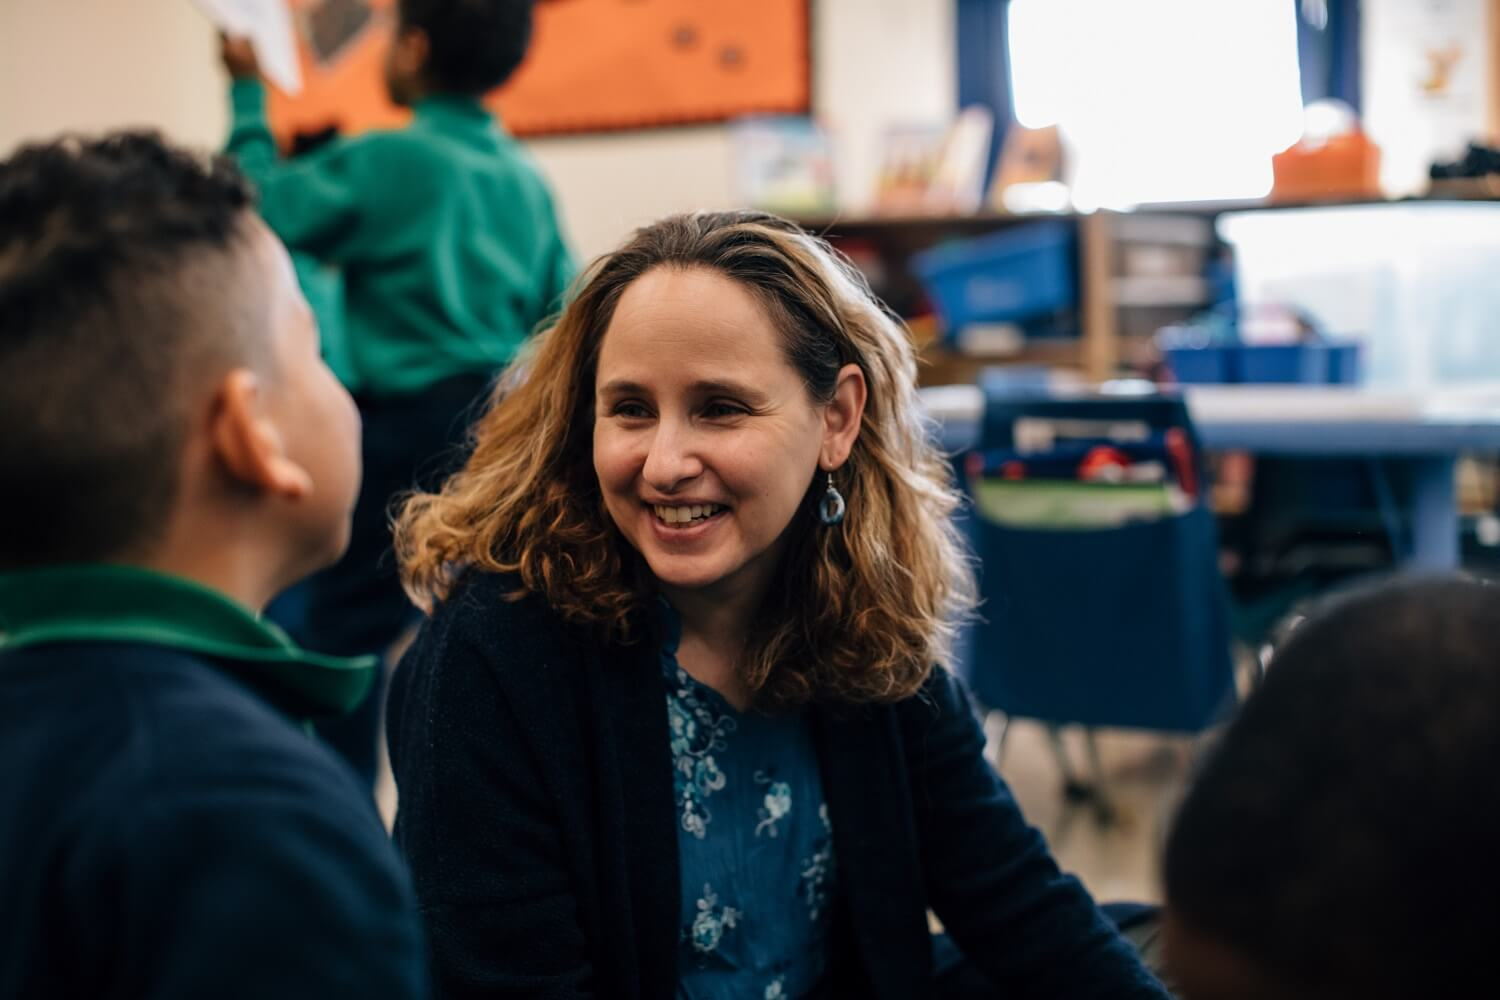 A teacher smiles at her students.